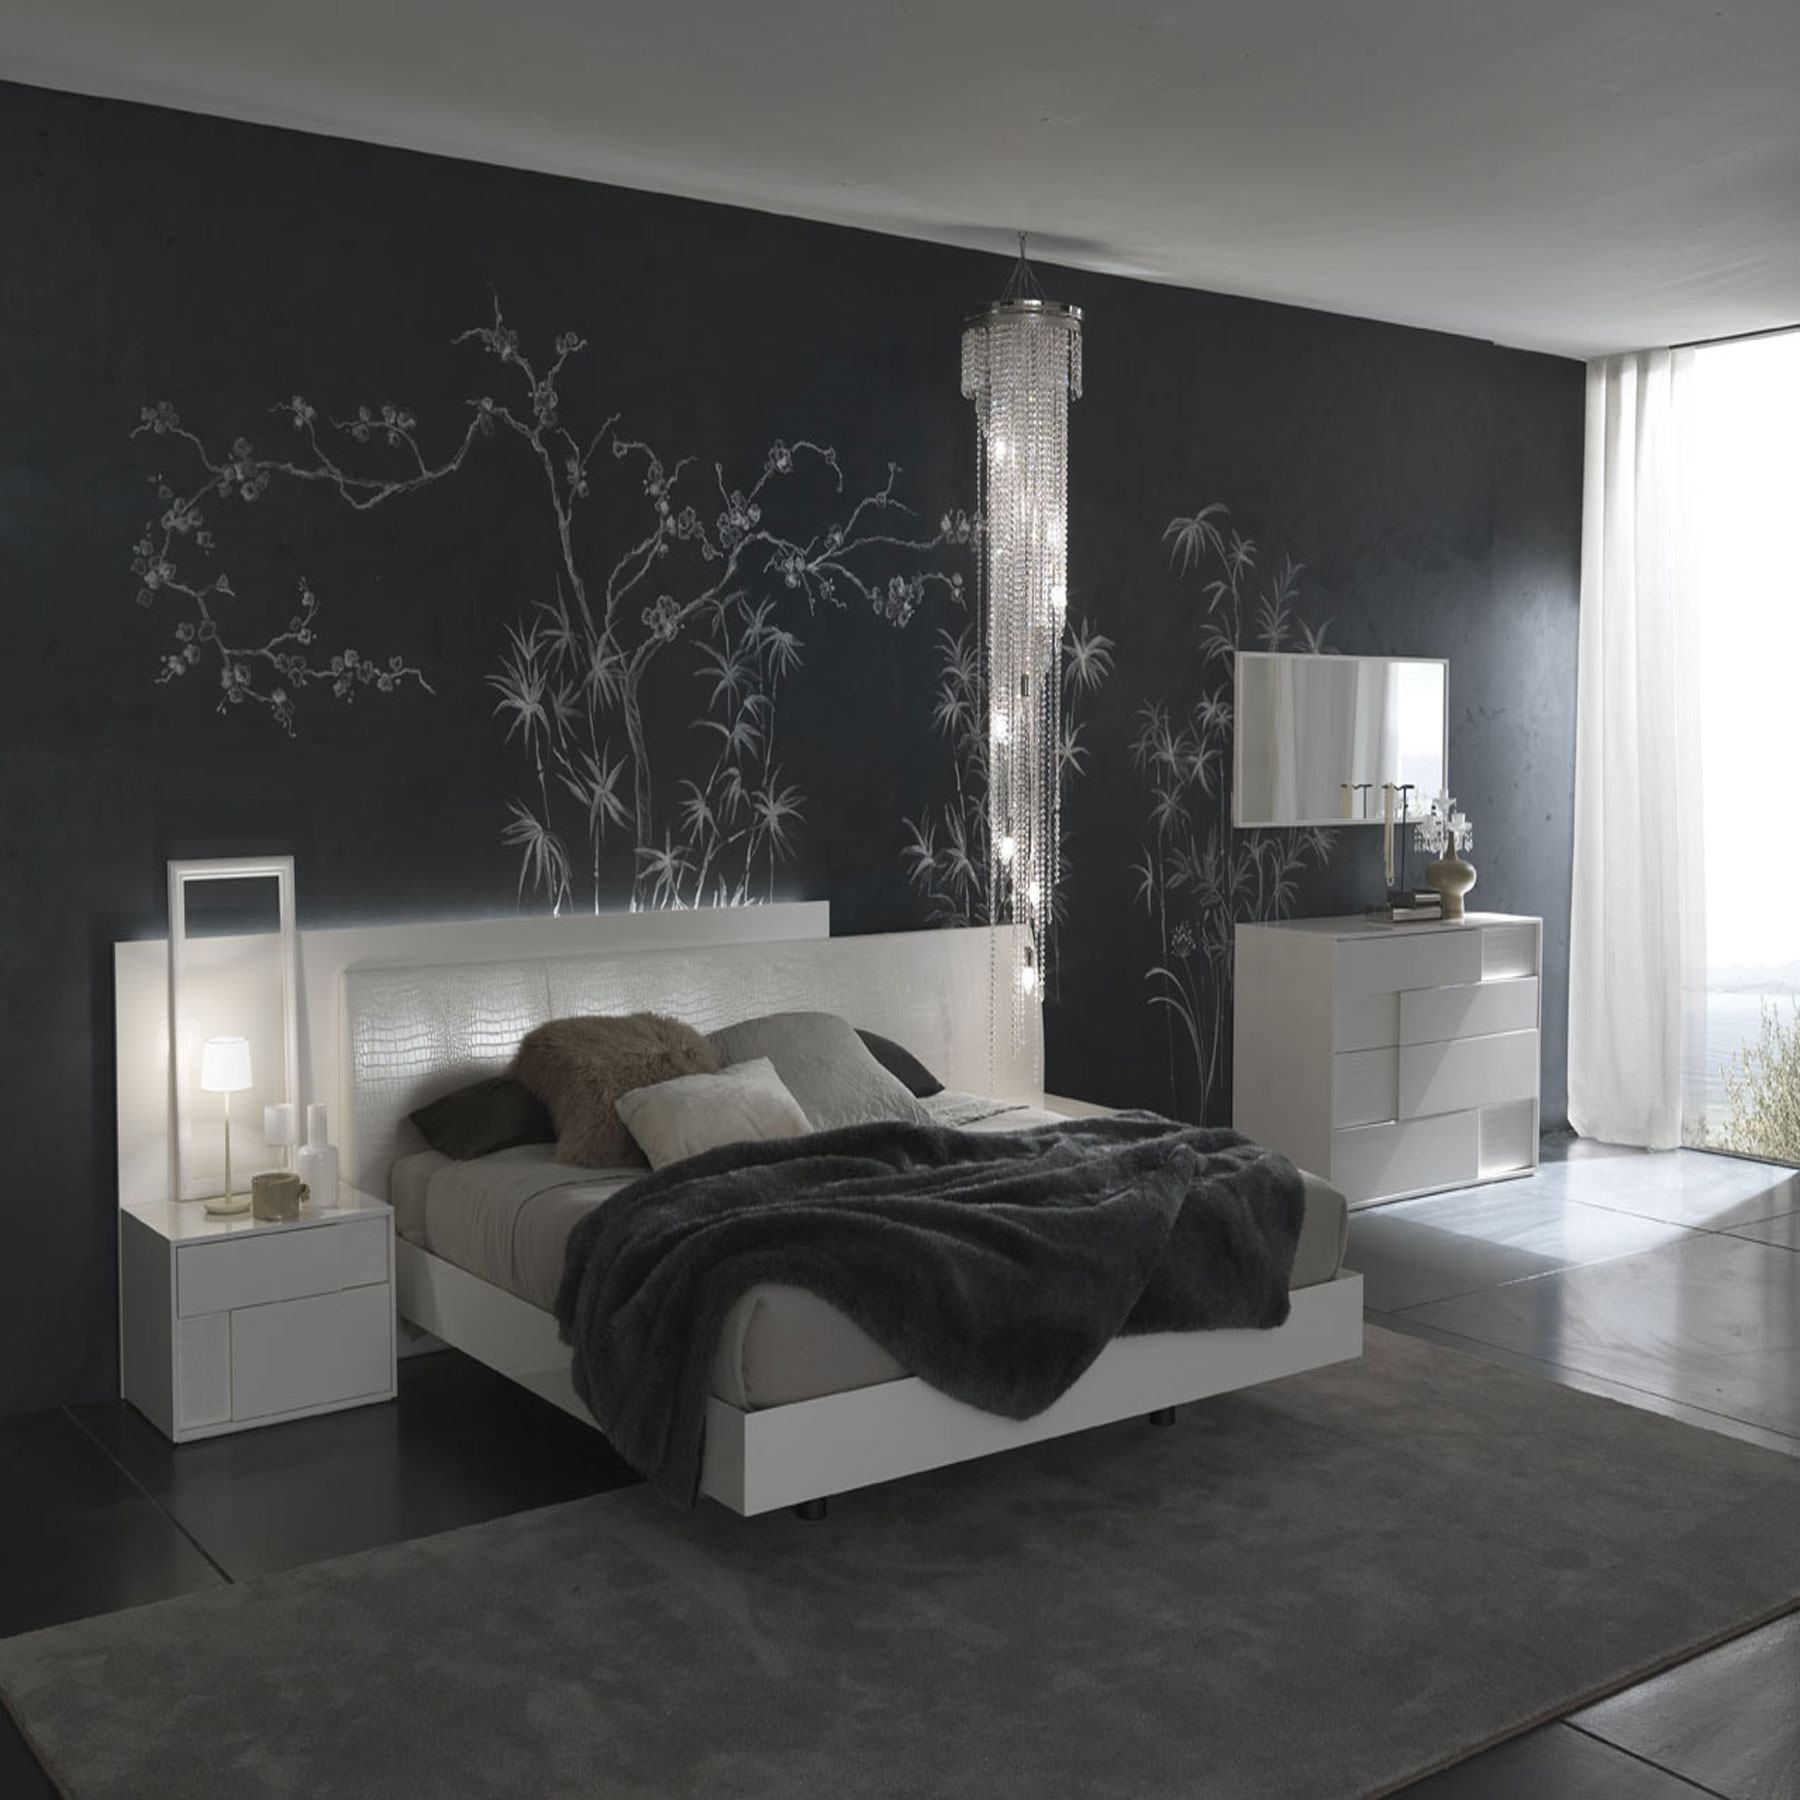 Bedroom paint designs black and white - Back In Black